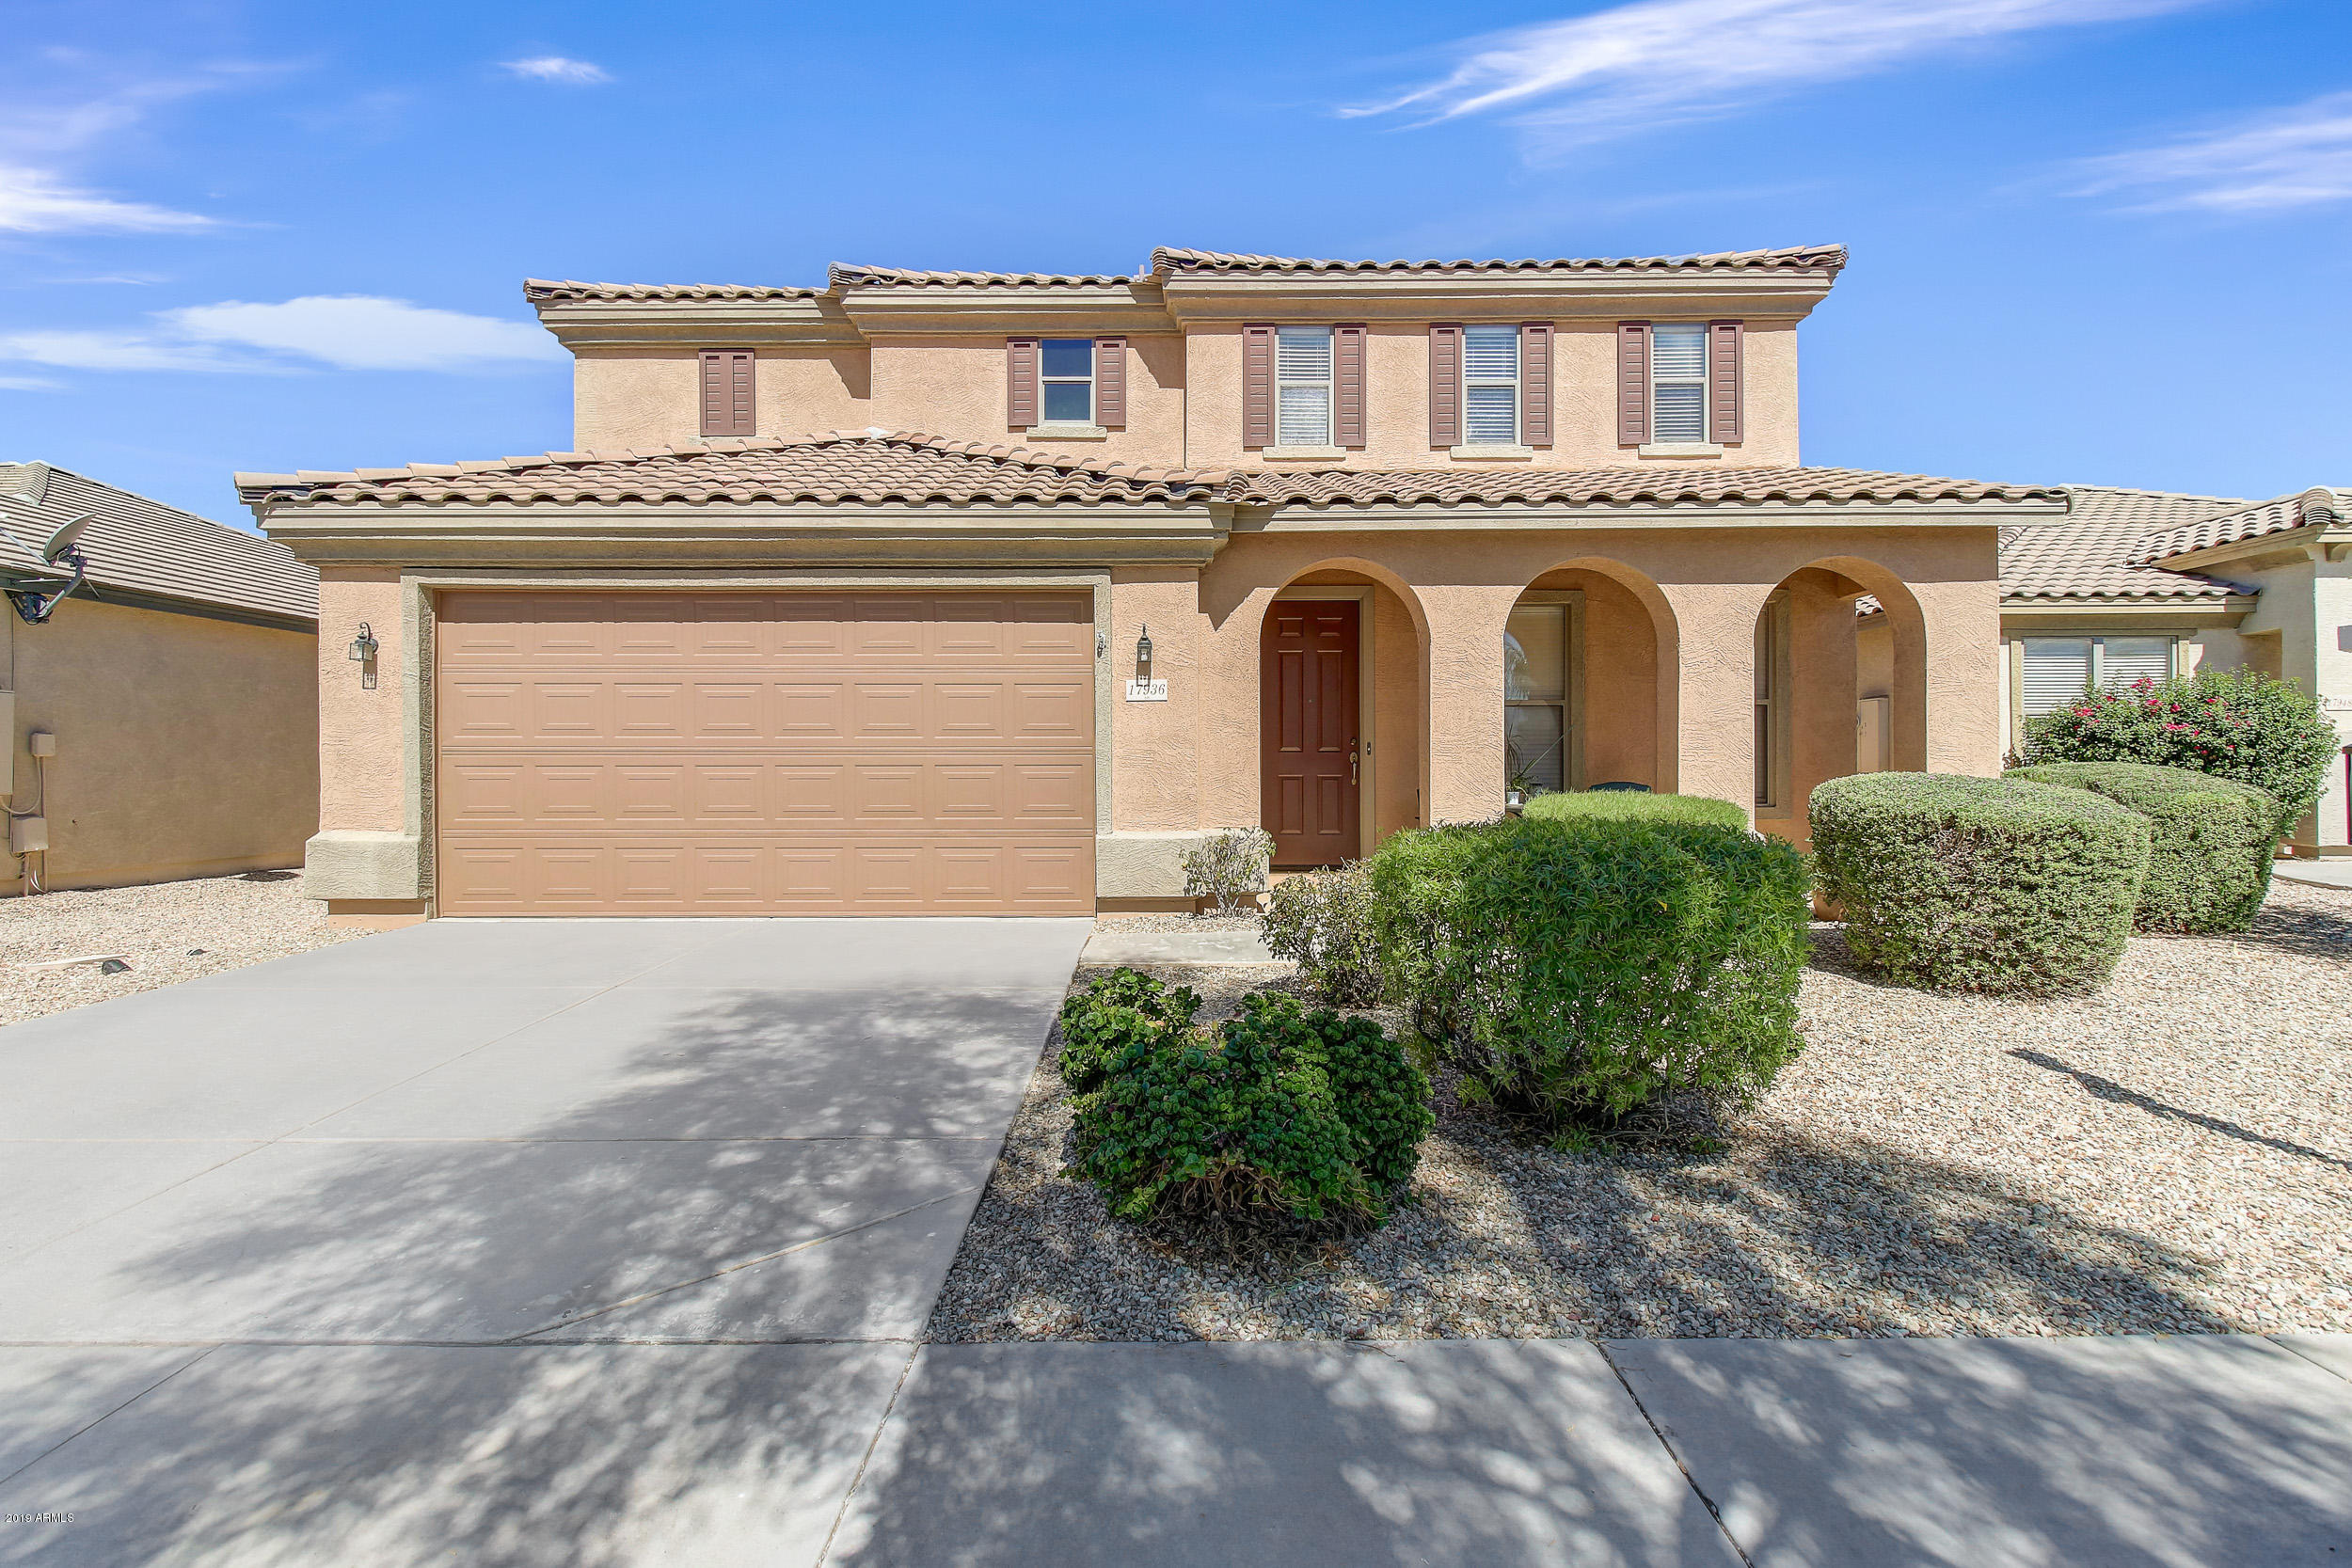 17936 N BELL POINTE Boulevard, Surprise, Arizona